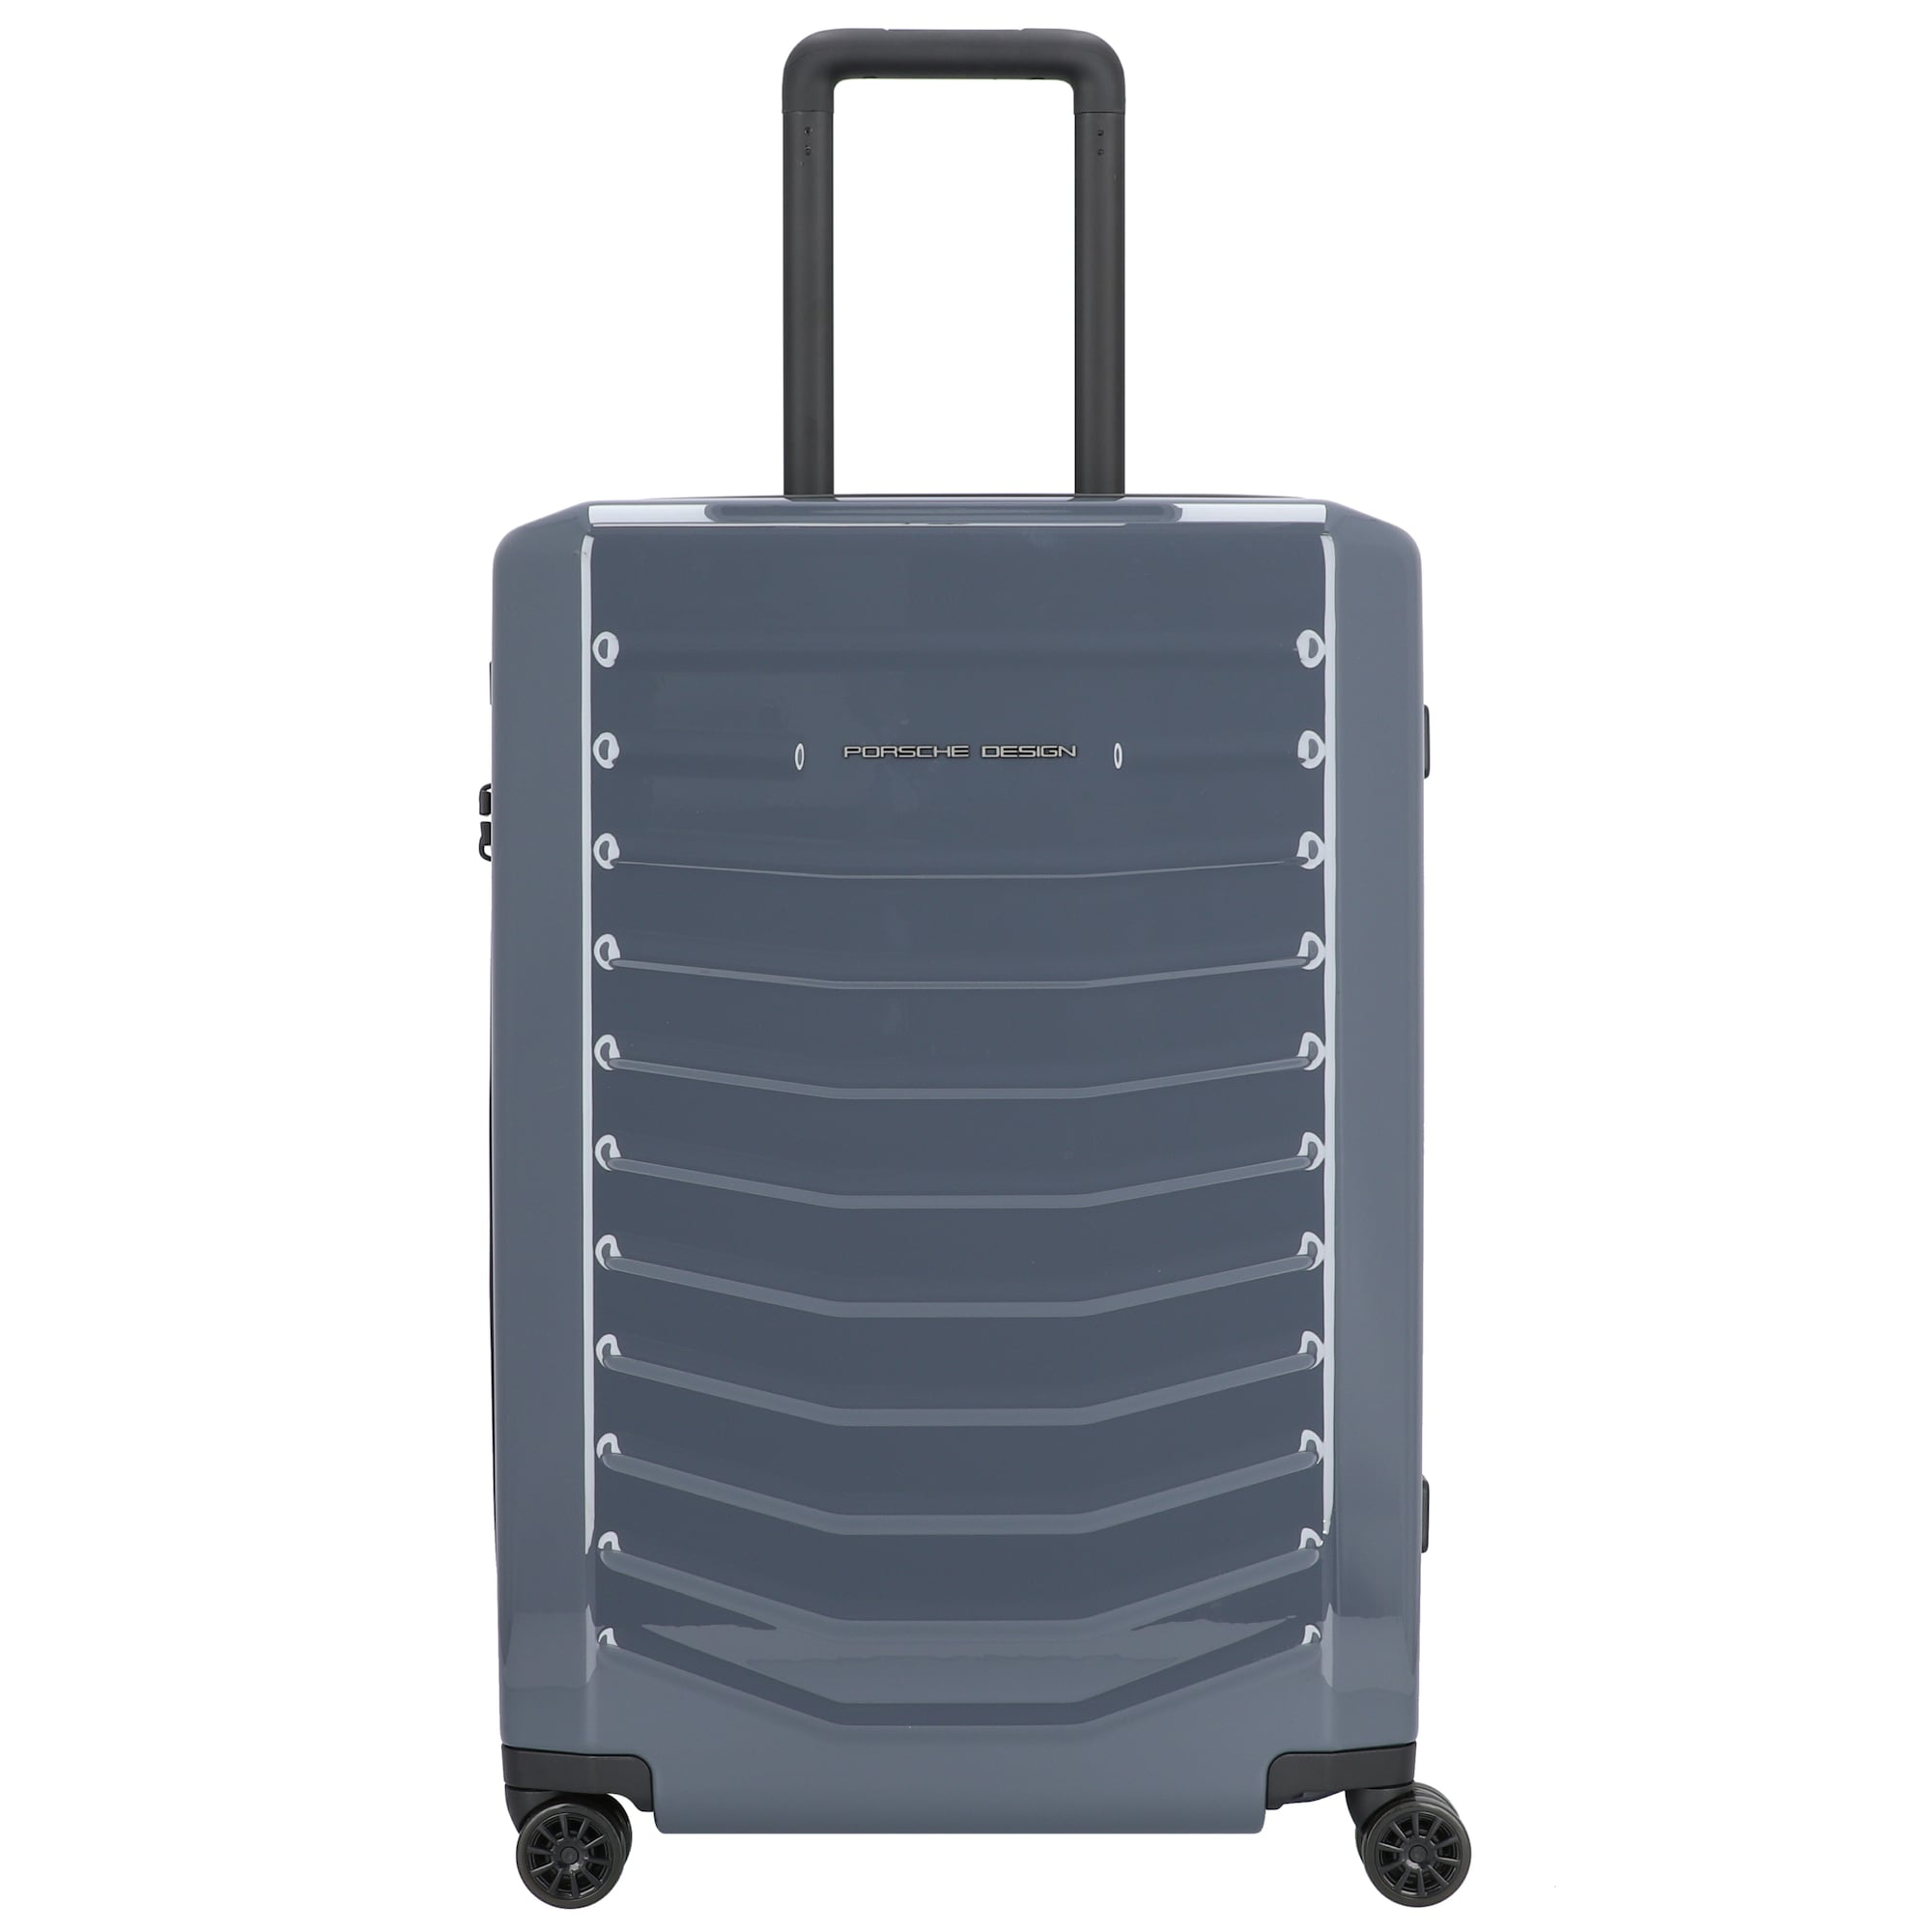 Trolley | Taschen > Koffer & Trolleys > Trolleys | Porsche Design